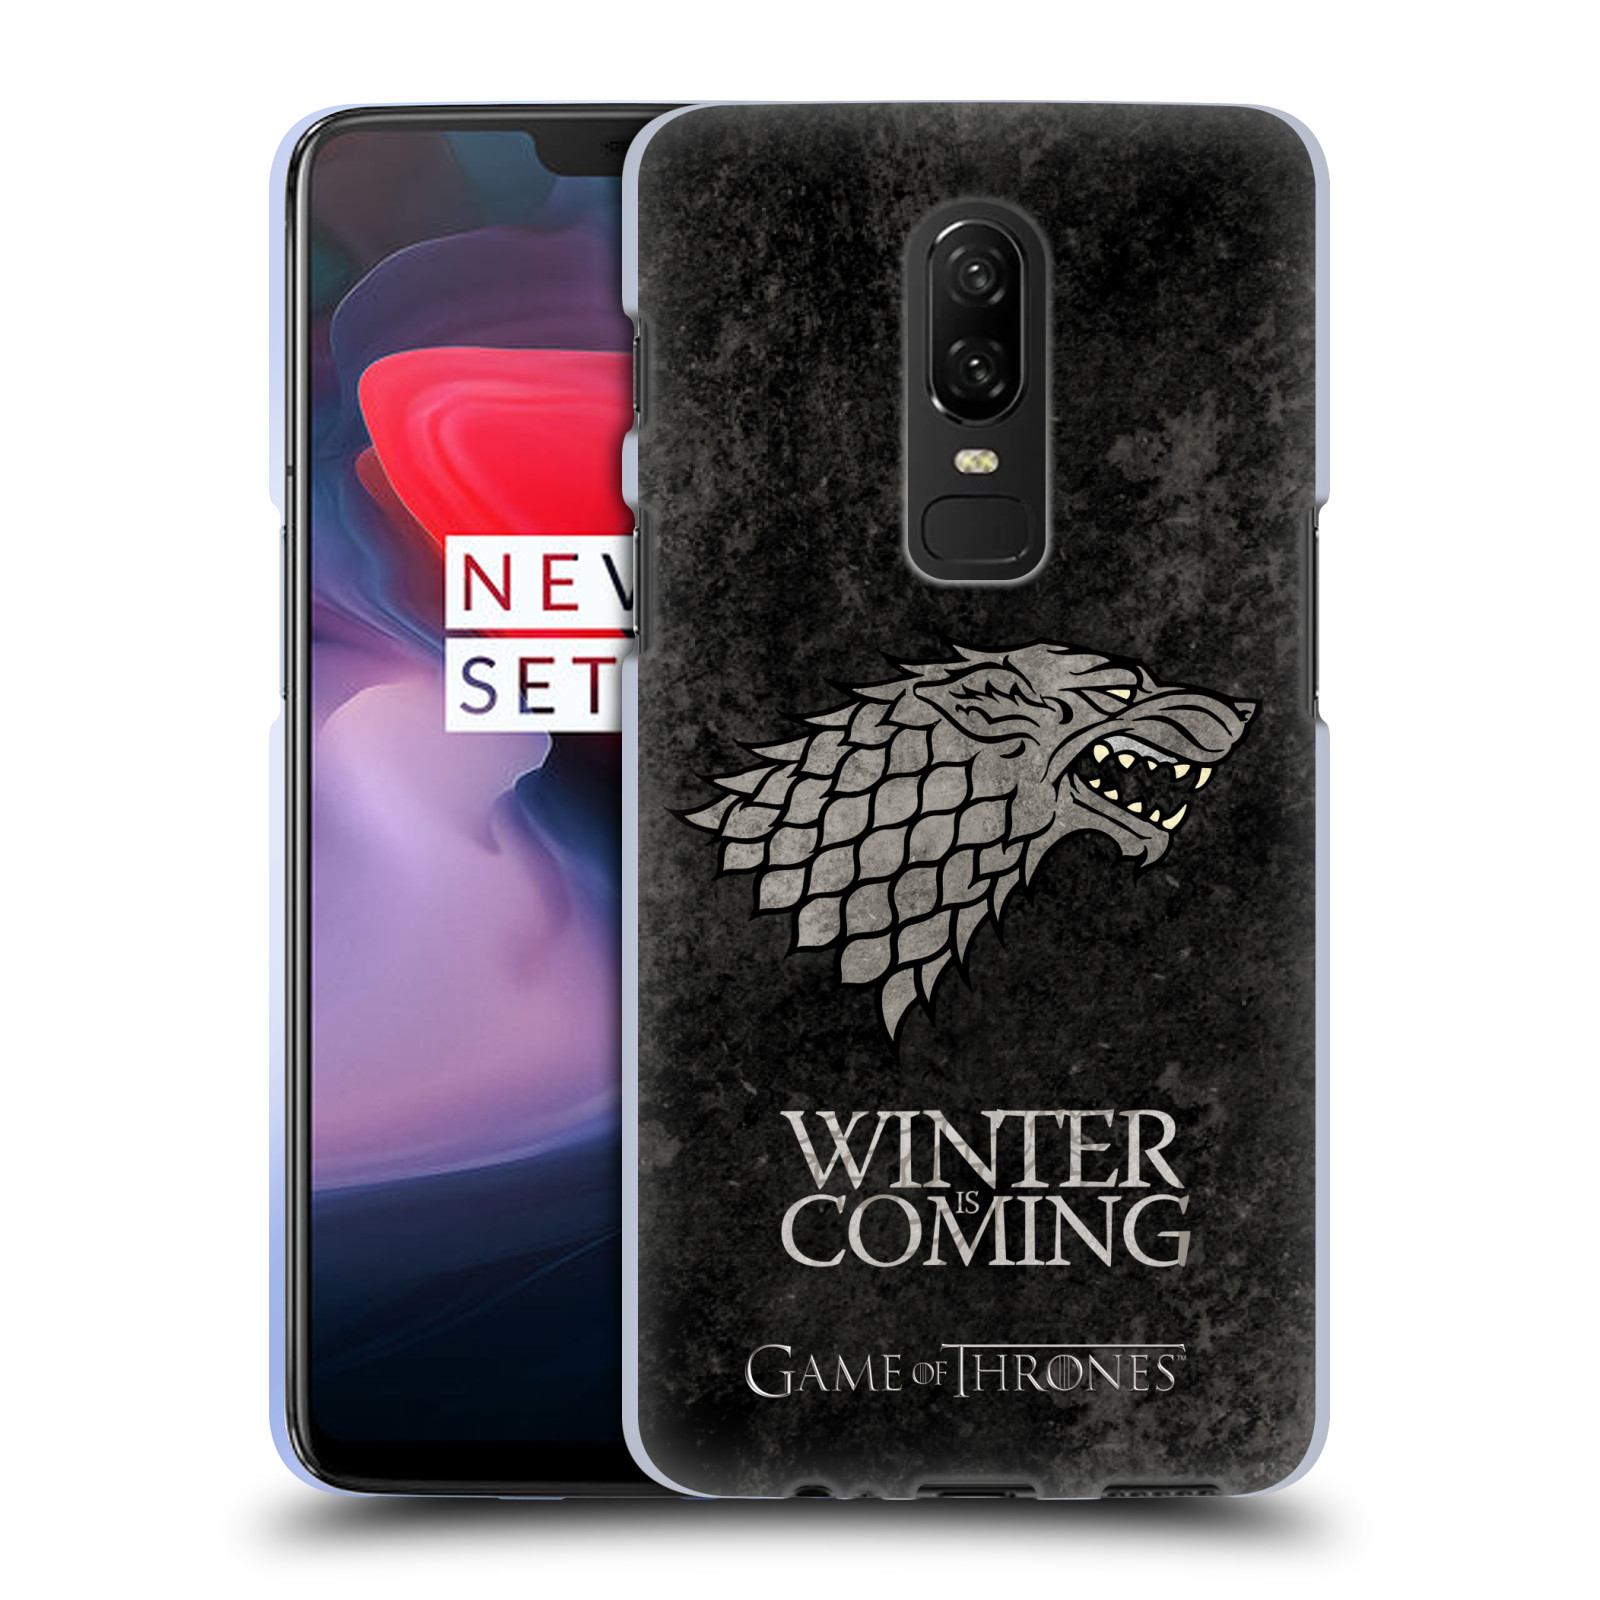 Silikonové pouzdro na mobil OnePlus 6 - Head Case - Hra o trůny - Stark - Winter is coming